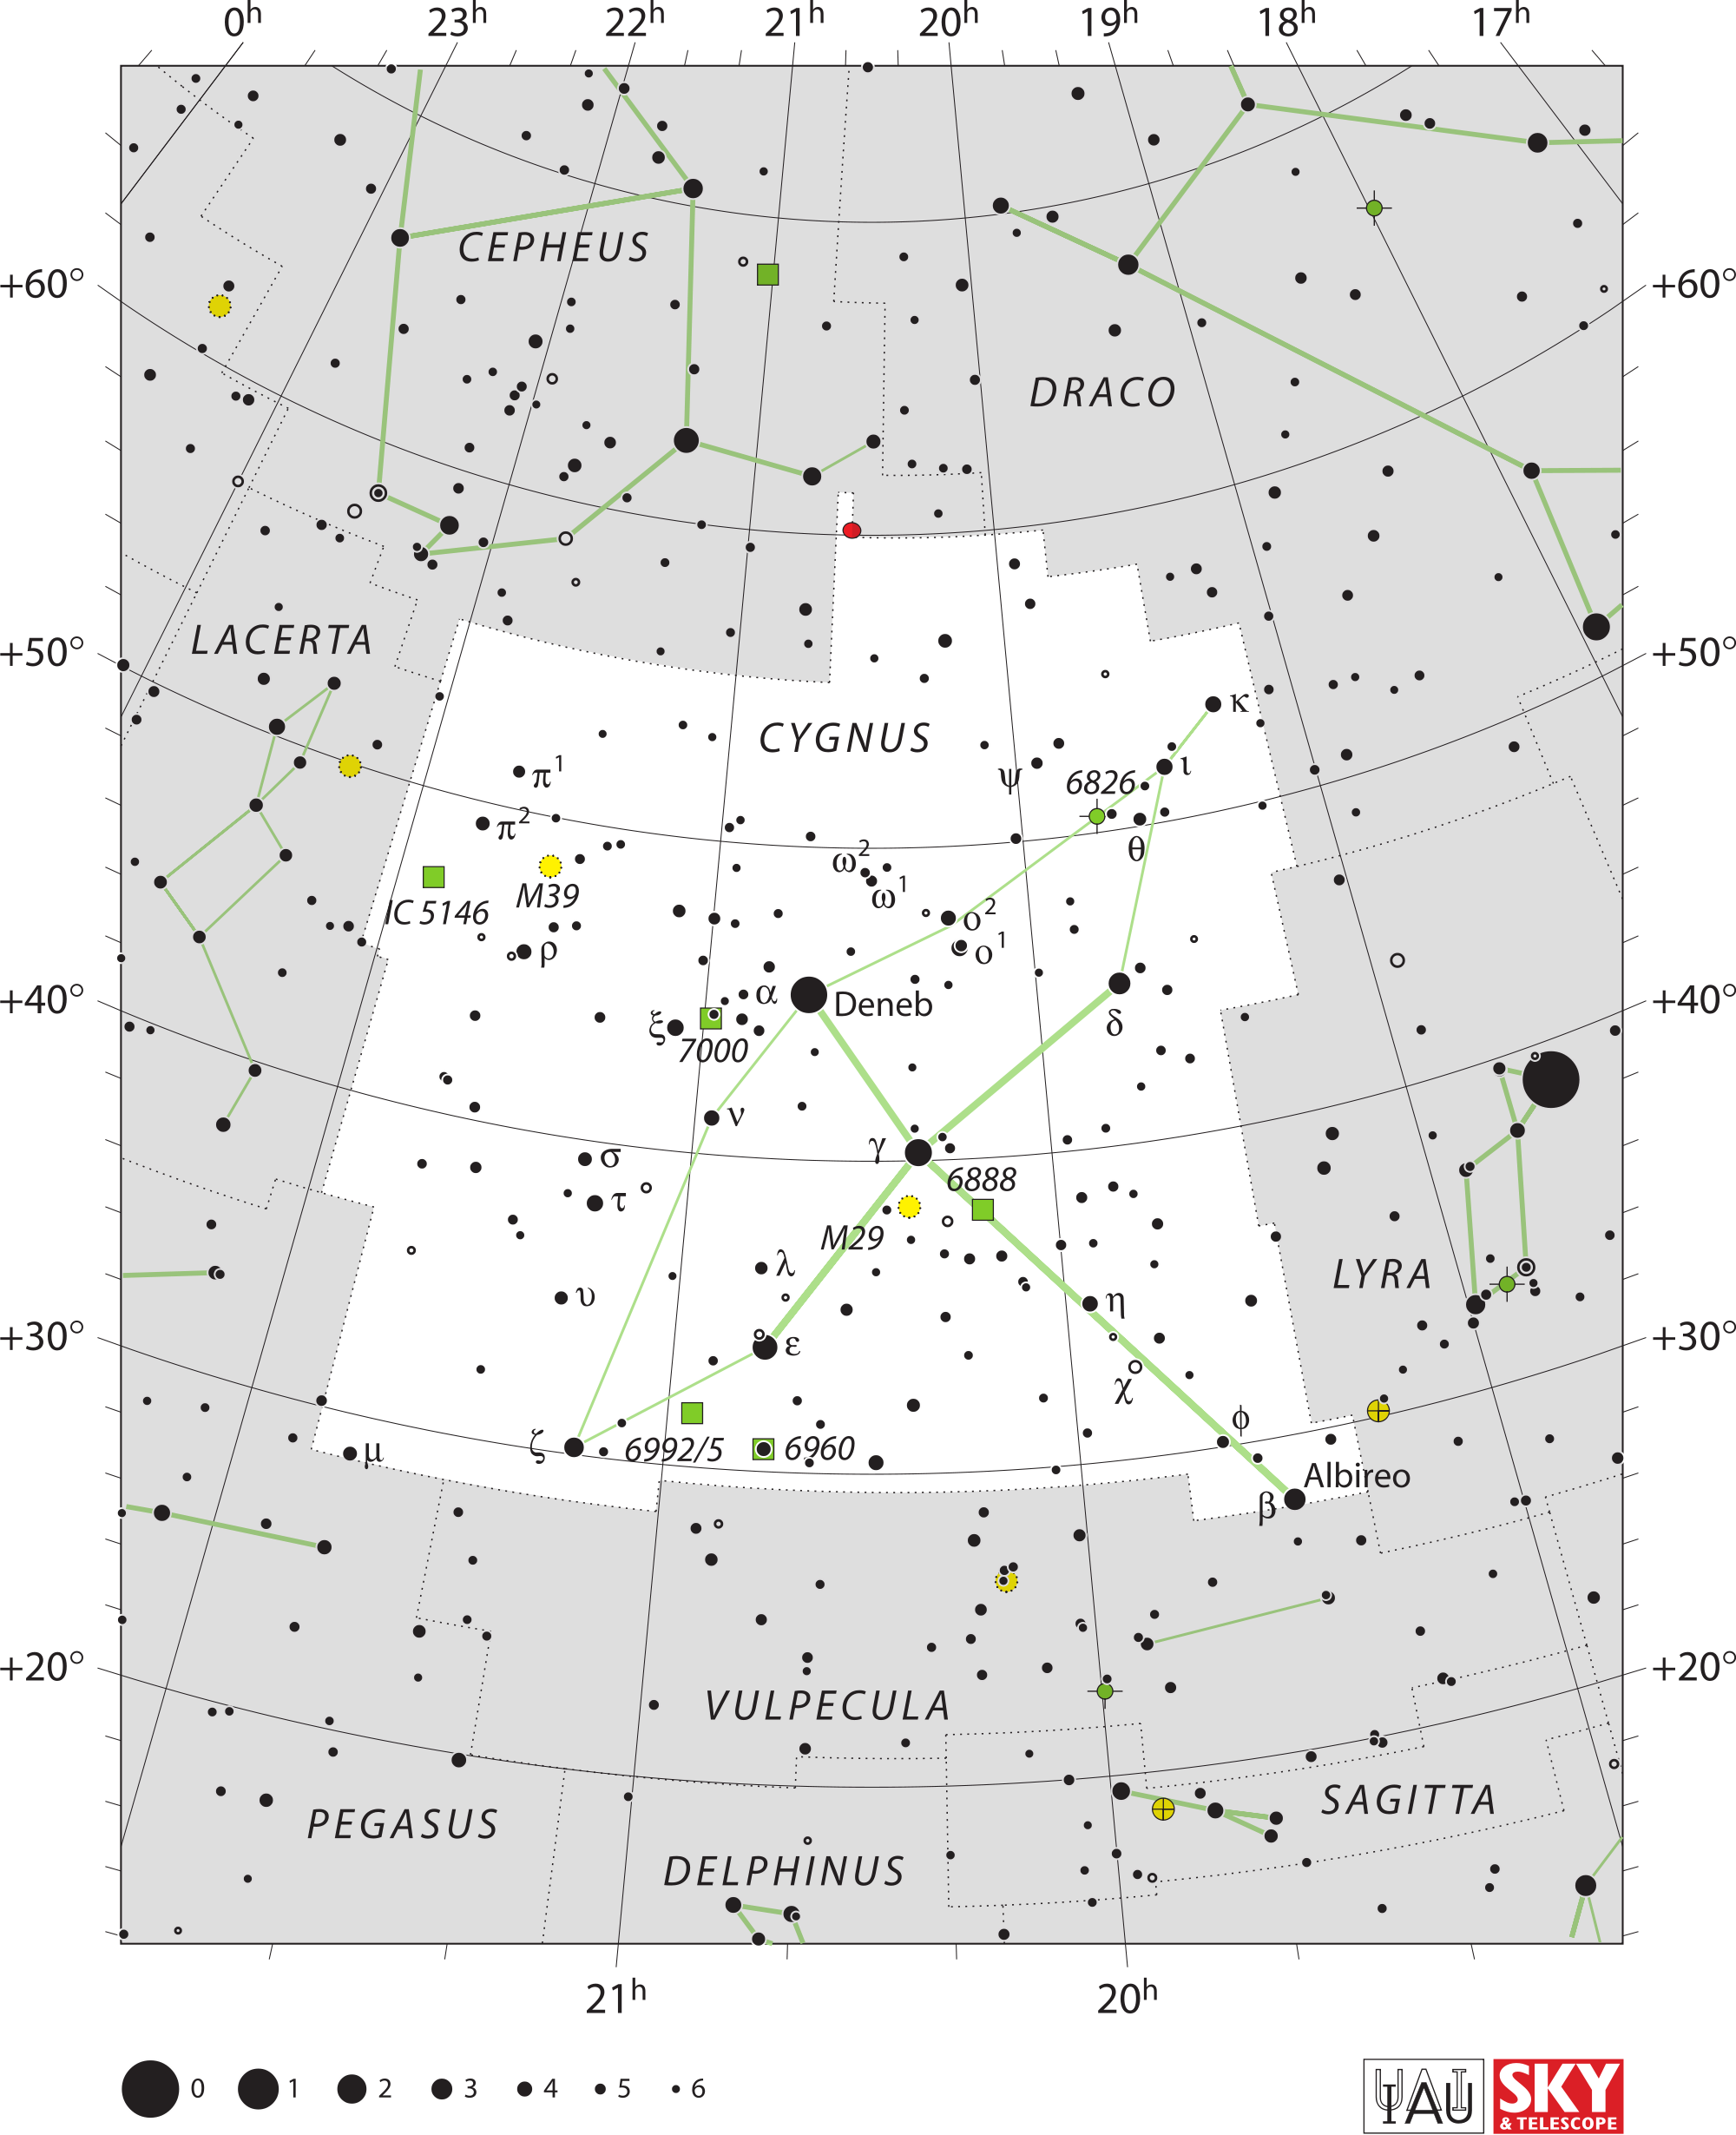 Svg 76 arc hb. Cygni wikipedia diagram